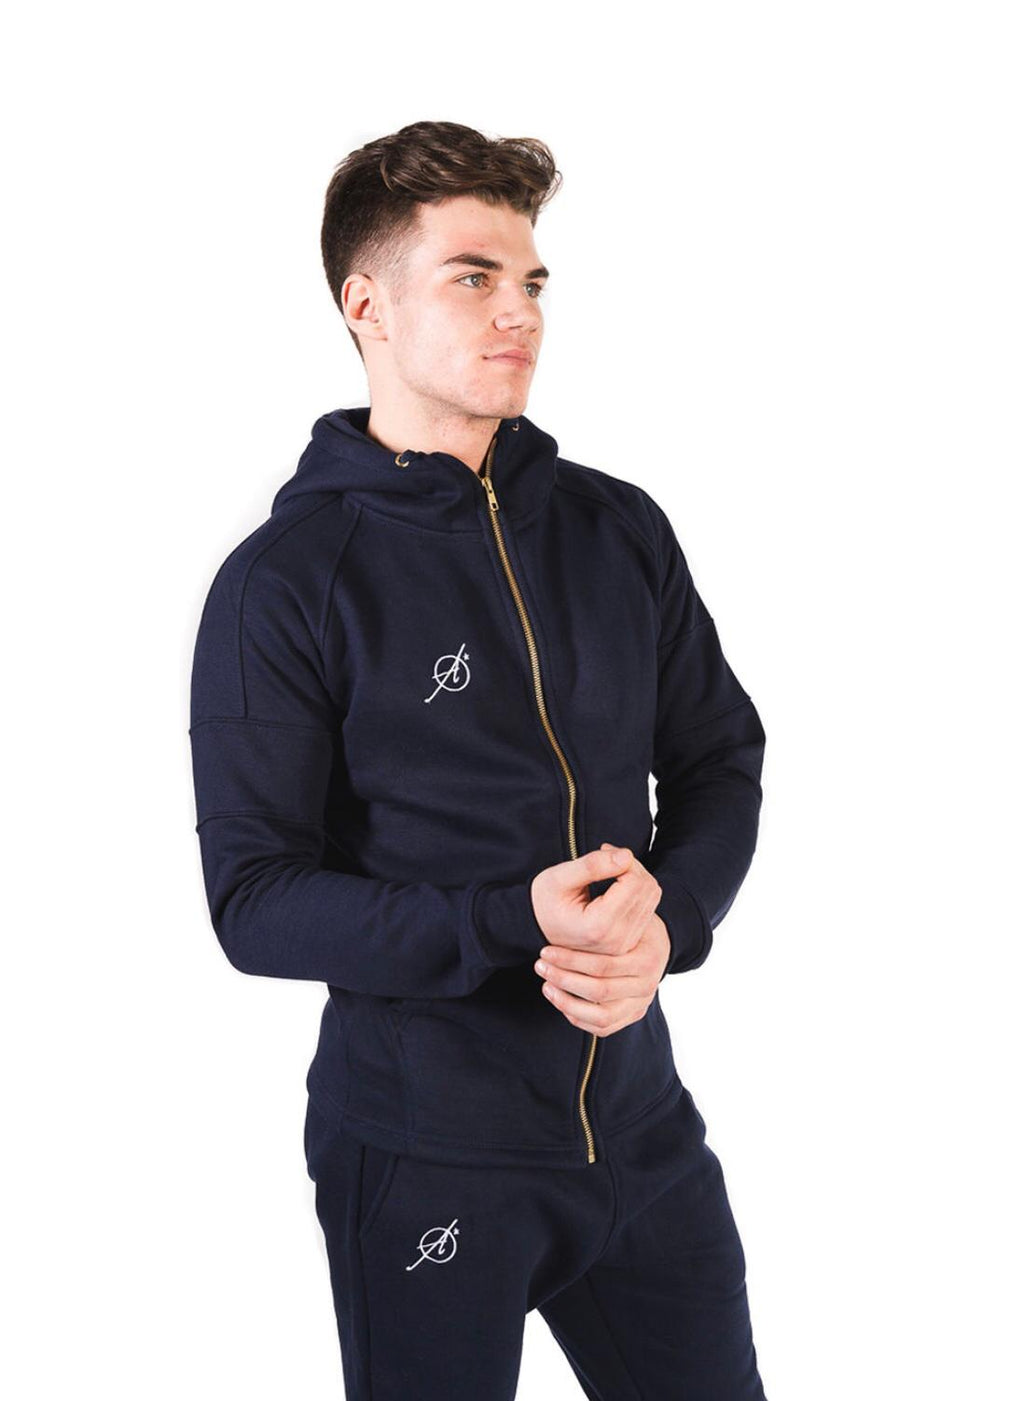 Authenticity 'Signature' Hooded Track Suit